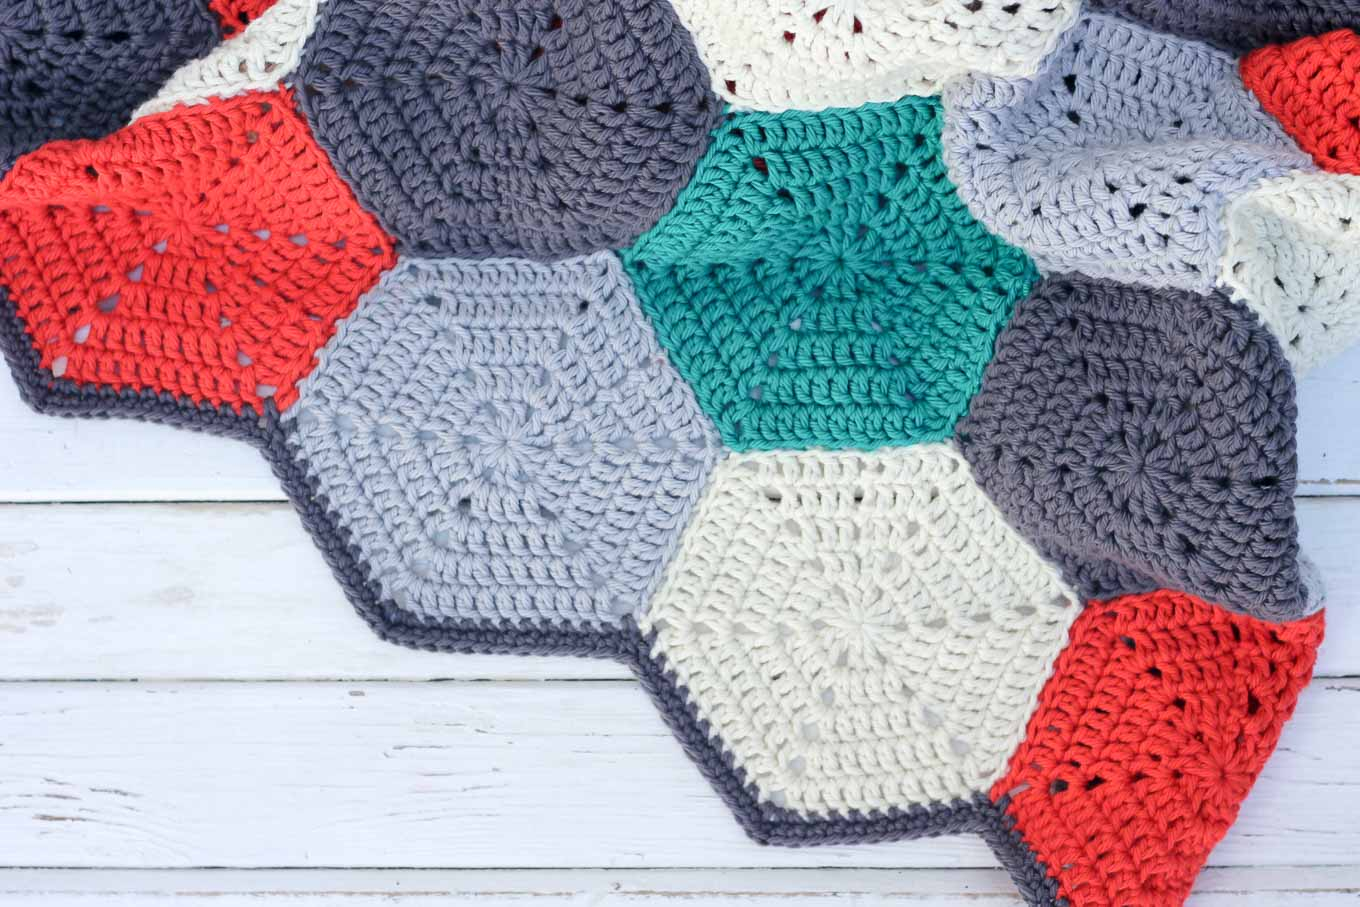 These Crochet Projects Ideas Will Blow Your Mind Happy Hexagons Free Crochet Afghan Pattern Make Do Crew